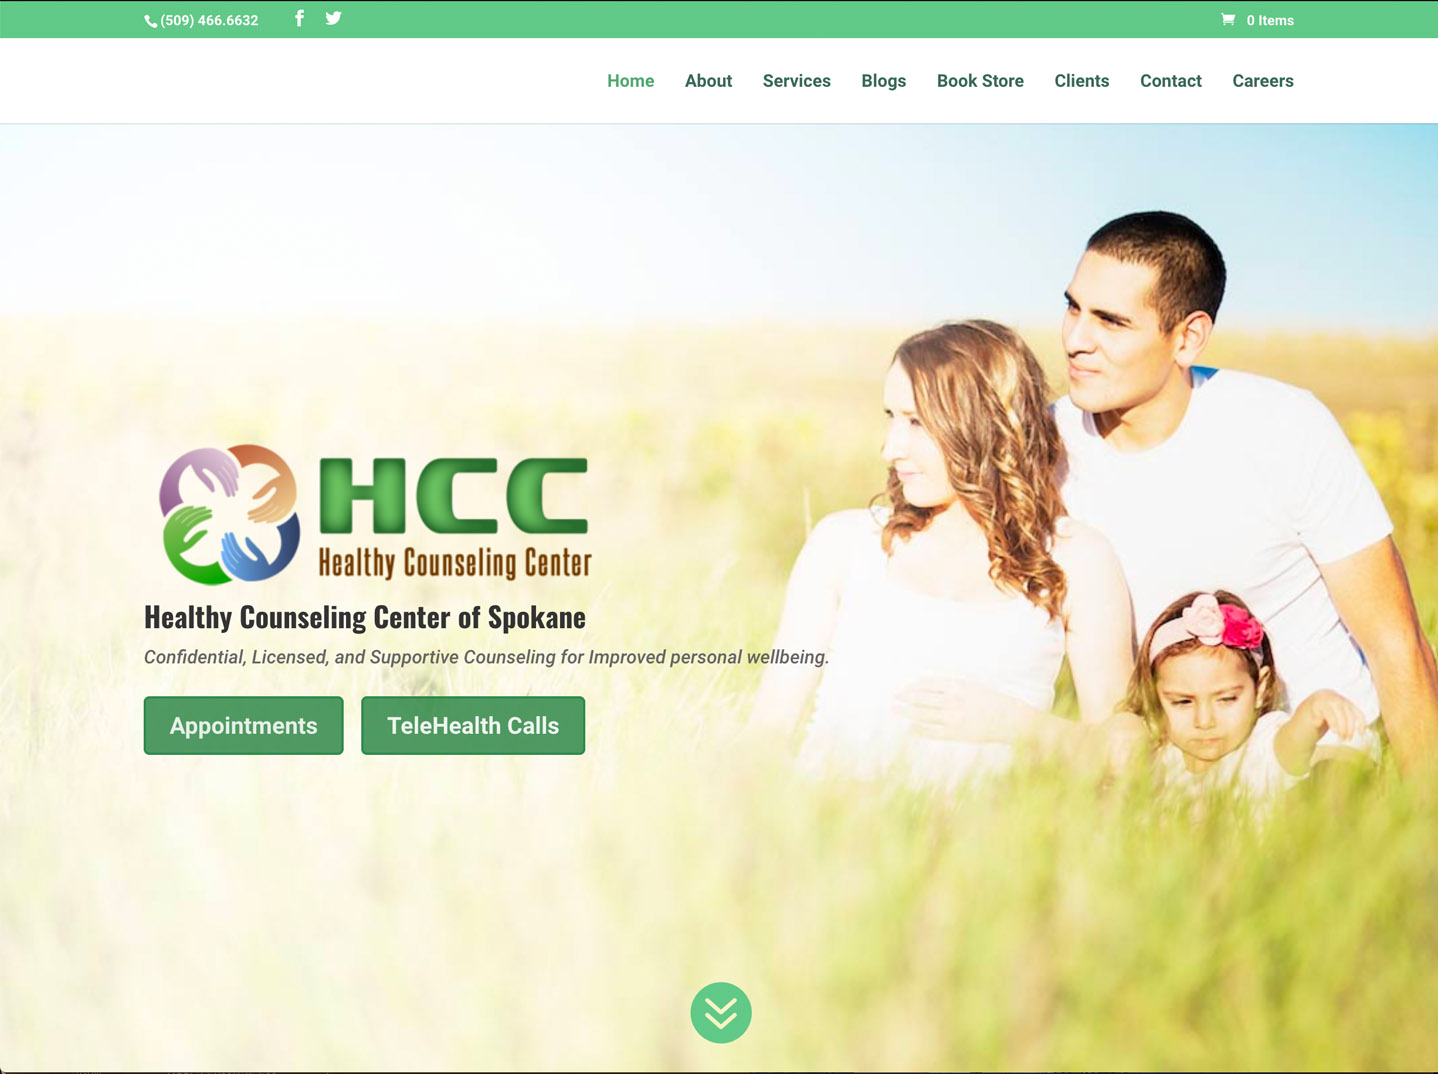 Healthy Counseling Center website